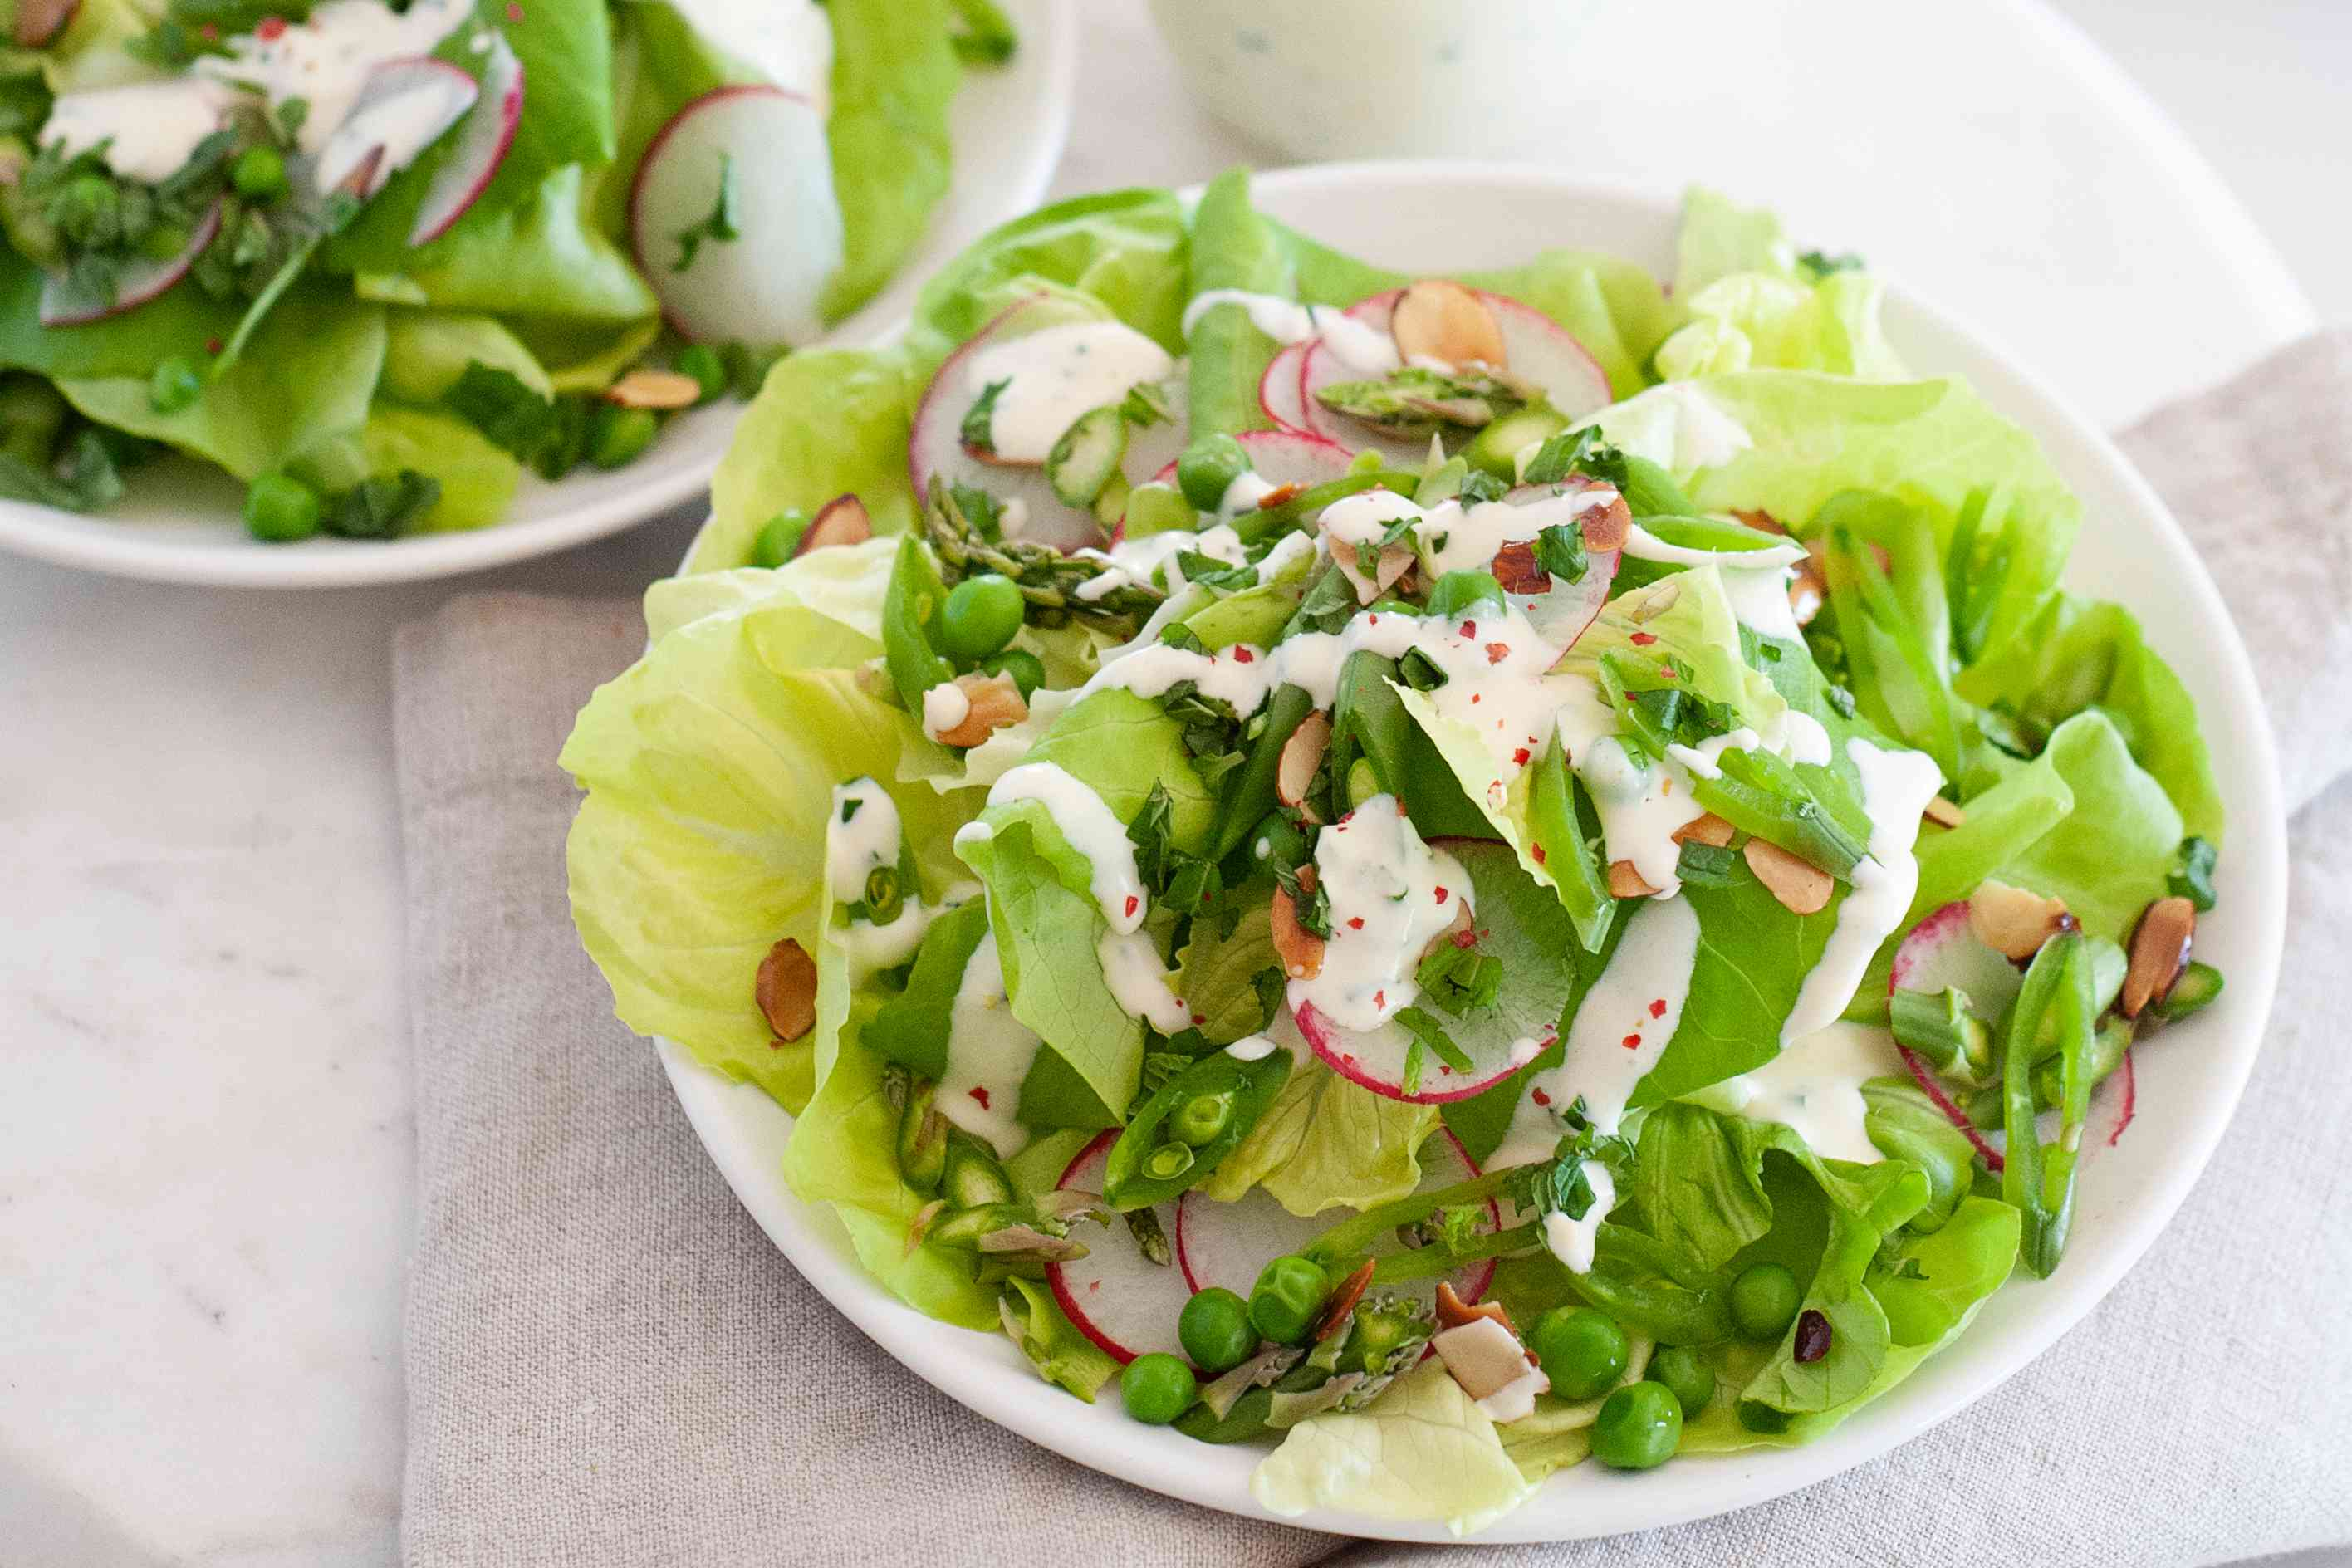 Green Spring Salad with Asparagus and Peas